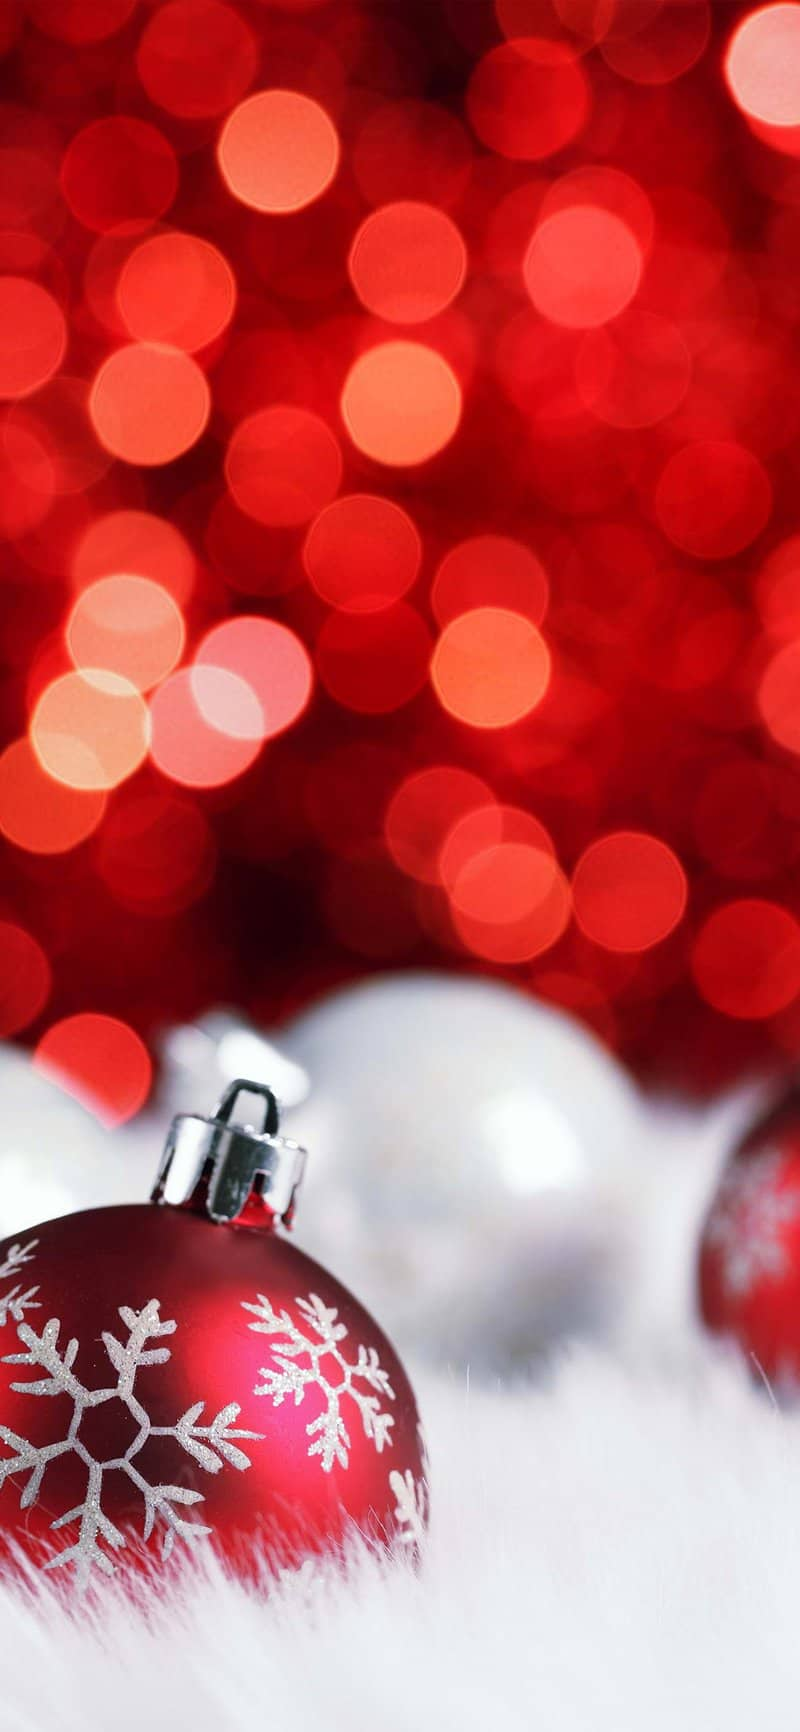 iphone xs max christmas wallpaper